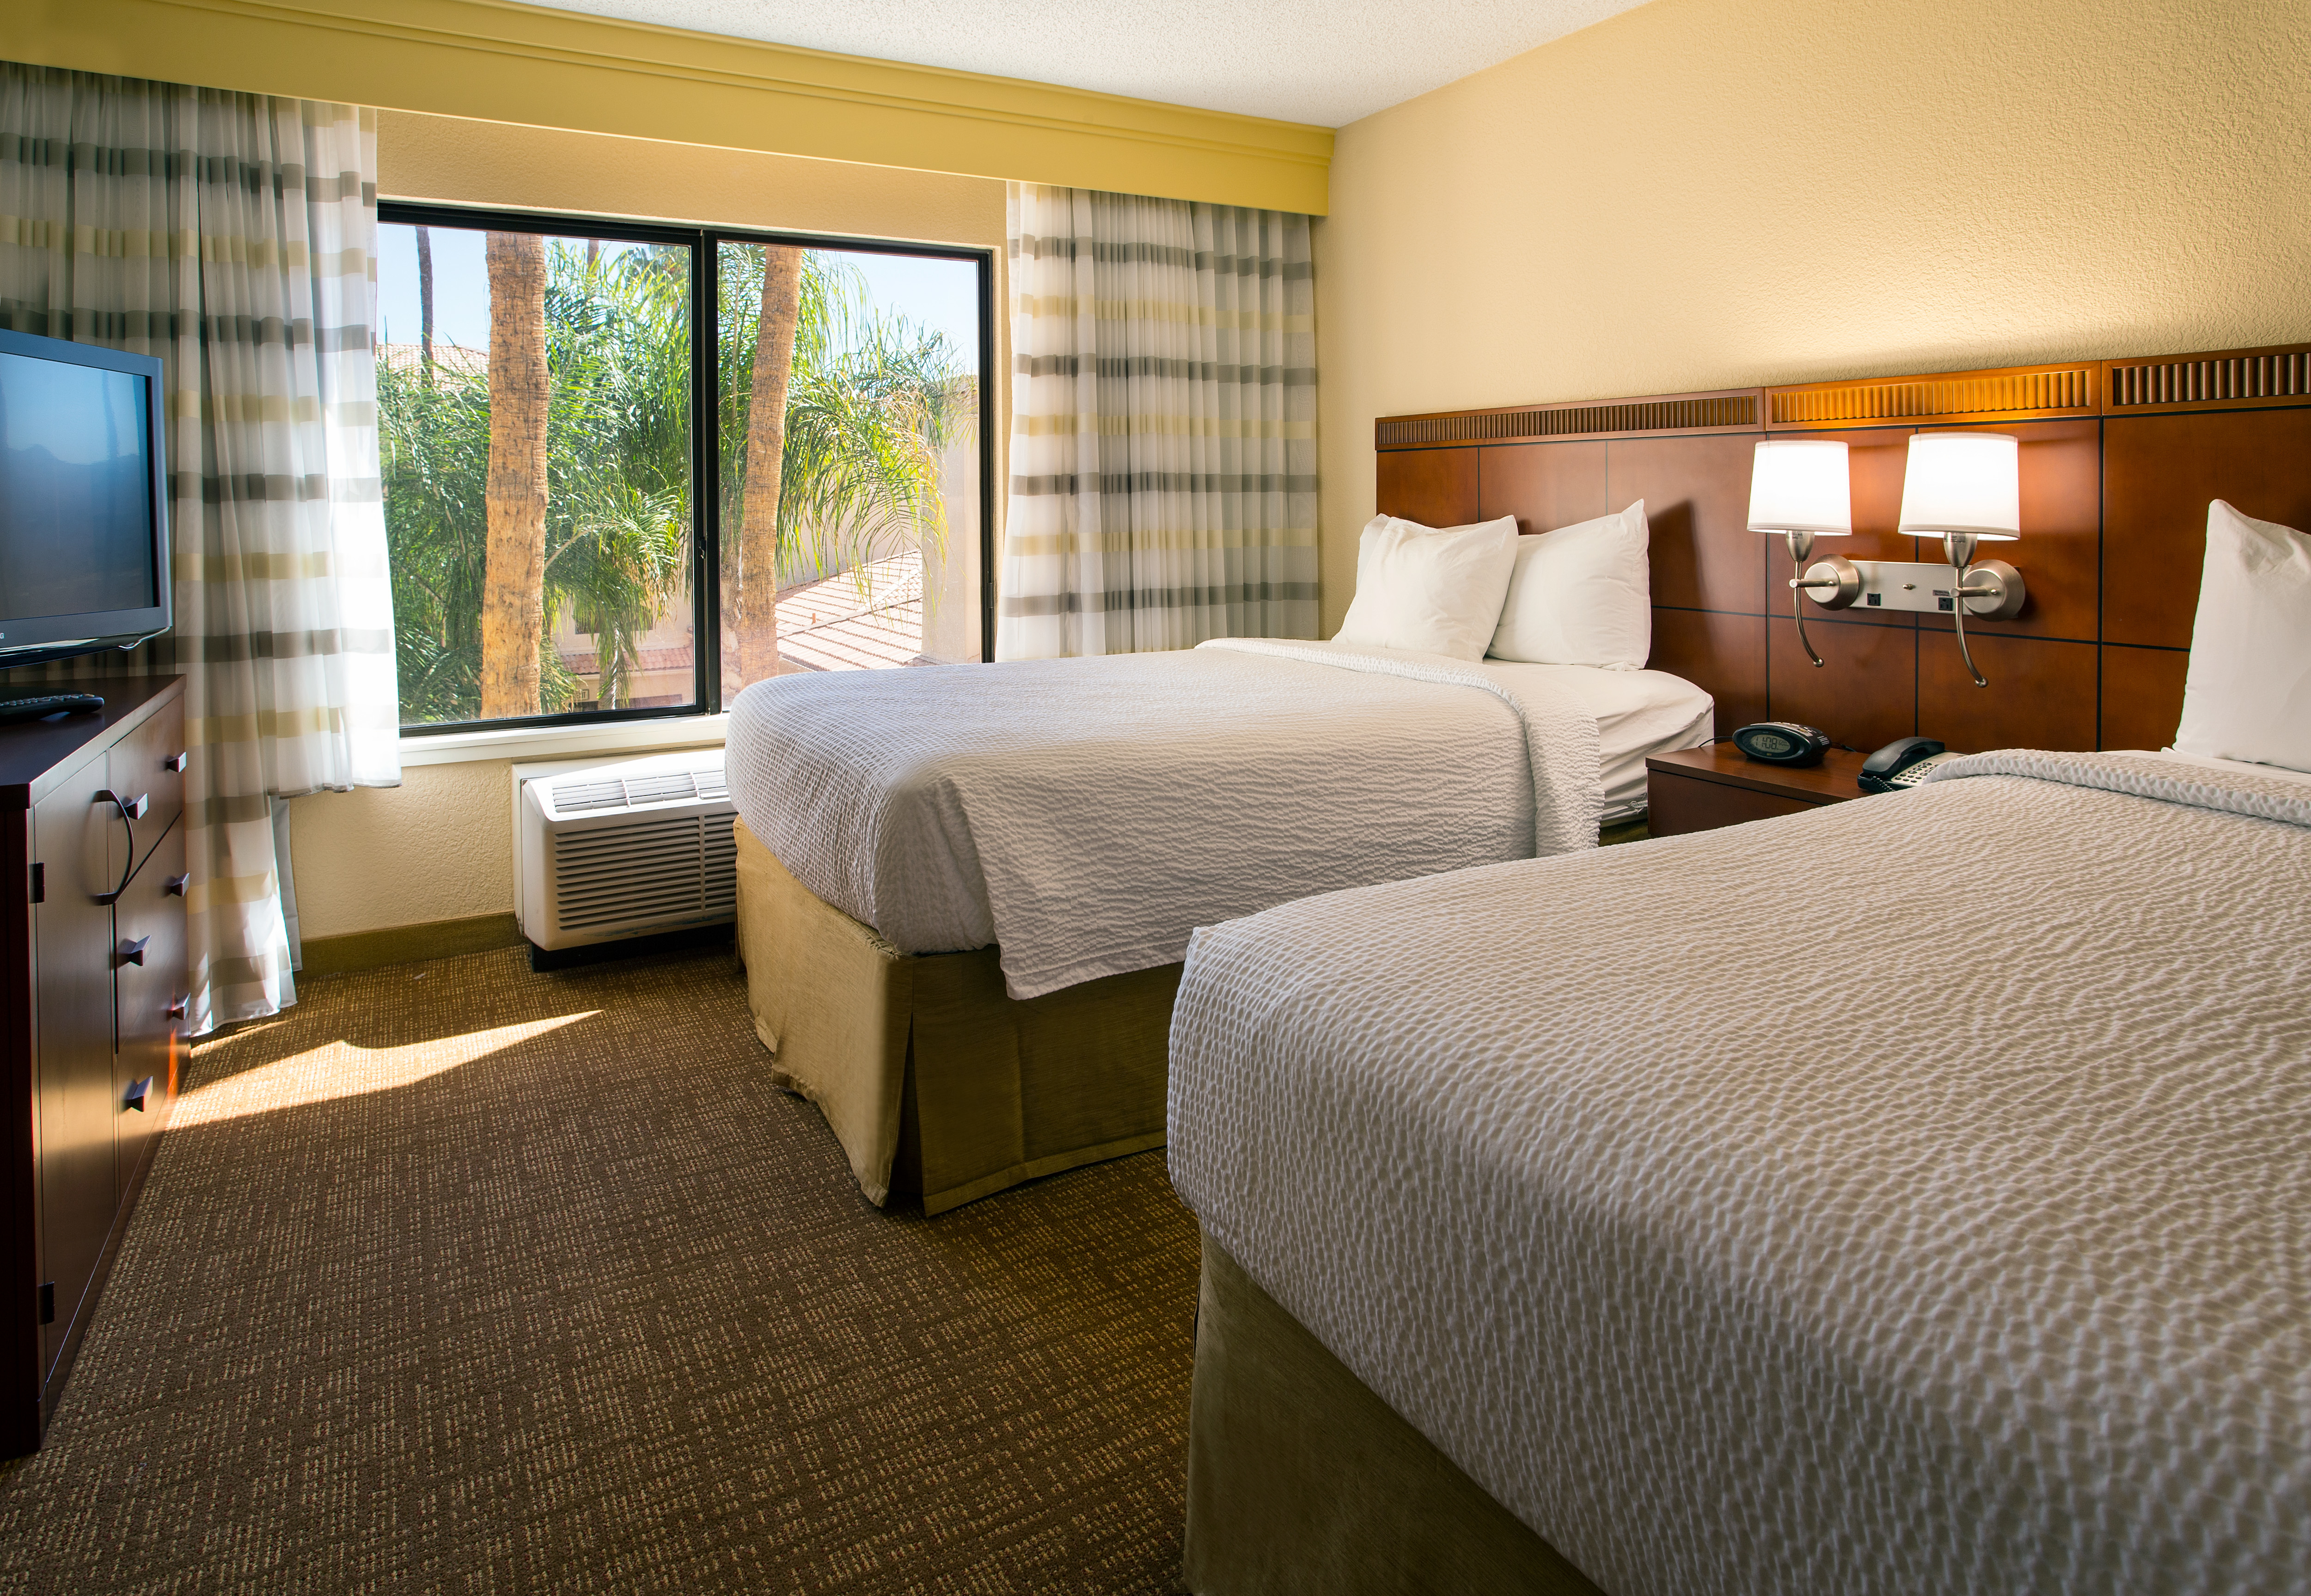 Jw marriott palm springs coupon code